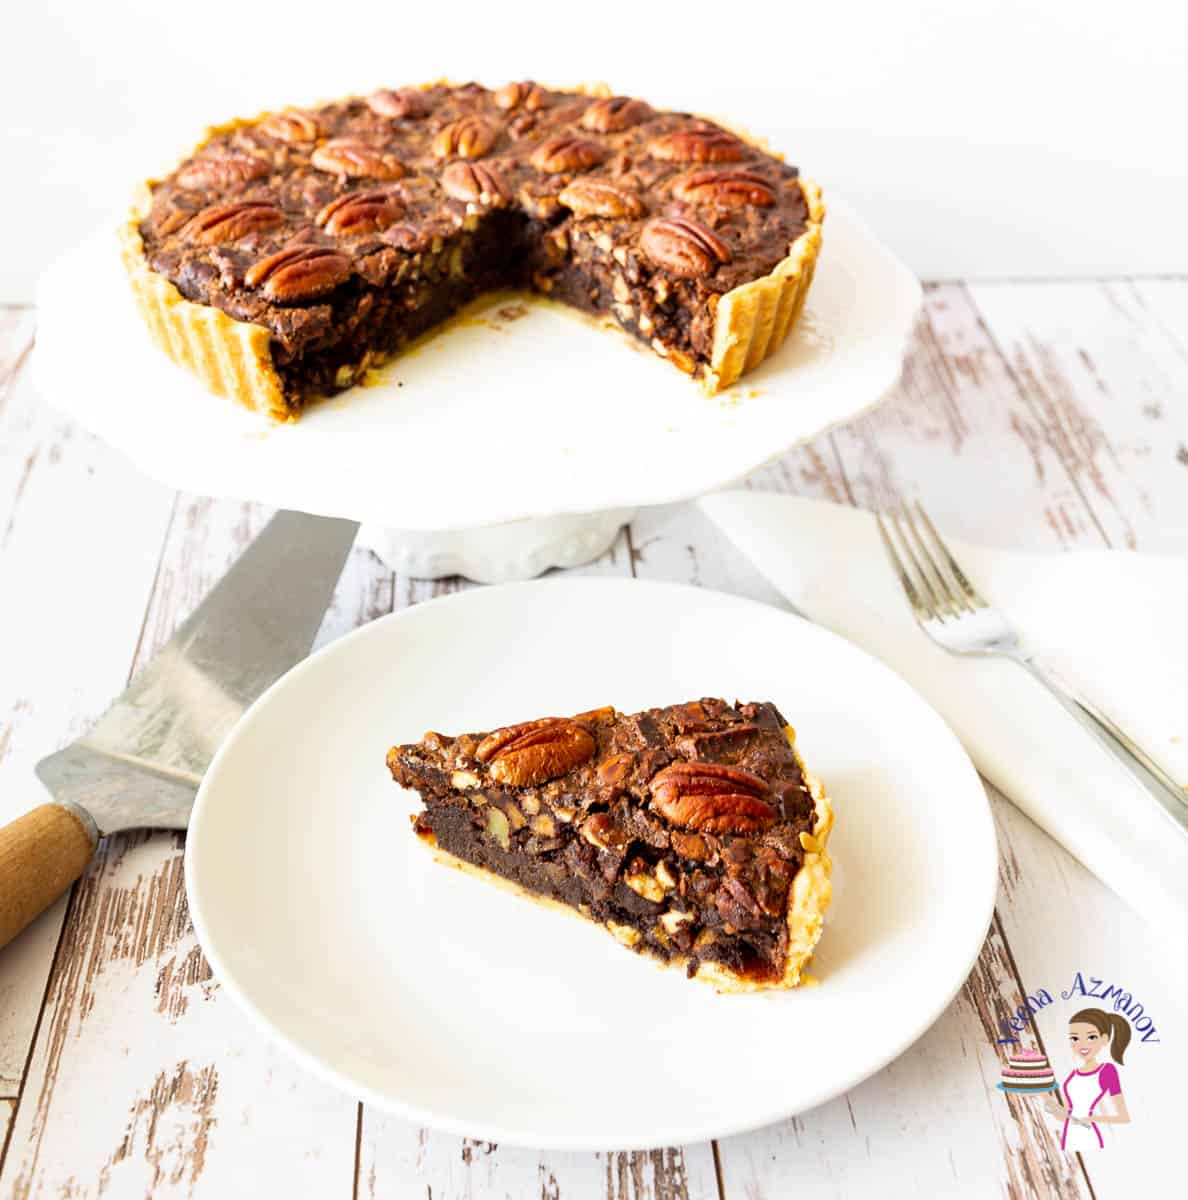 A slice of pecan pie on a plate, with the remaining pie on a cake stand.